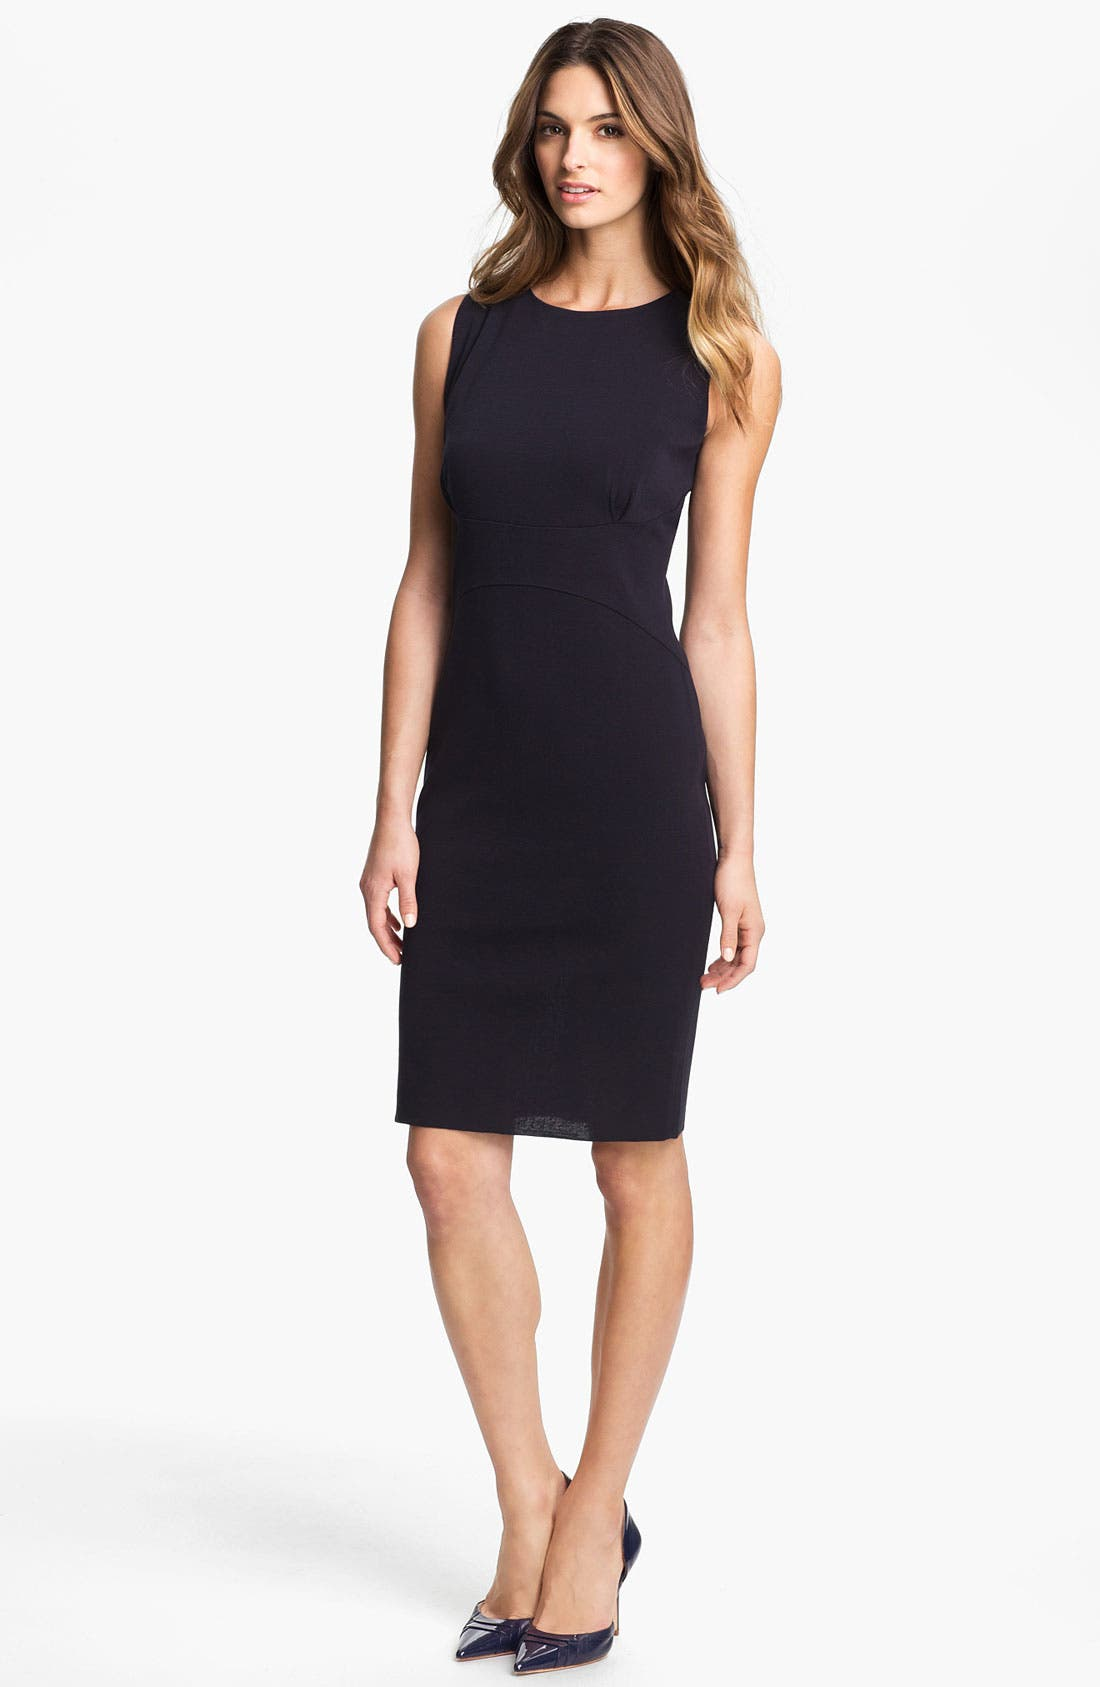 Main Image - Exclusively Misook 'Alex' Sheath Dress (Petite) (Online Exclusive)